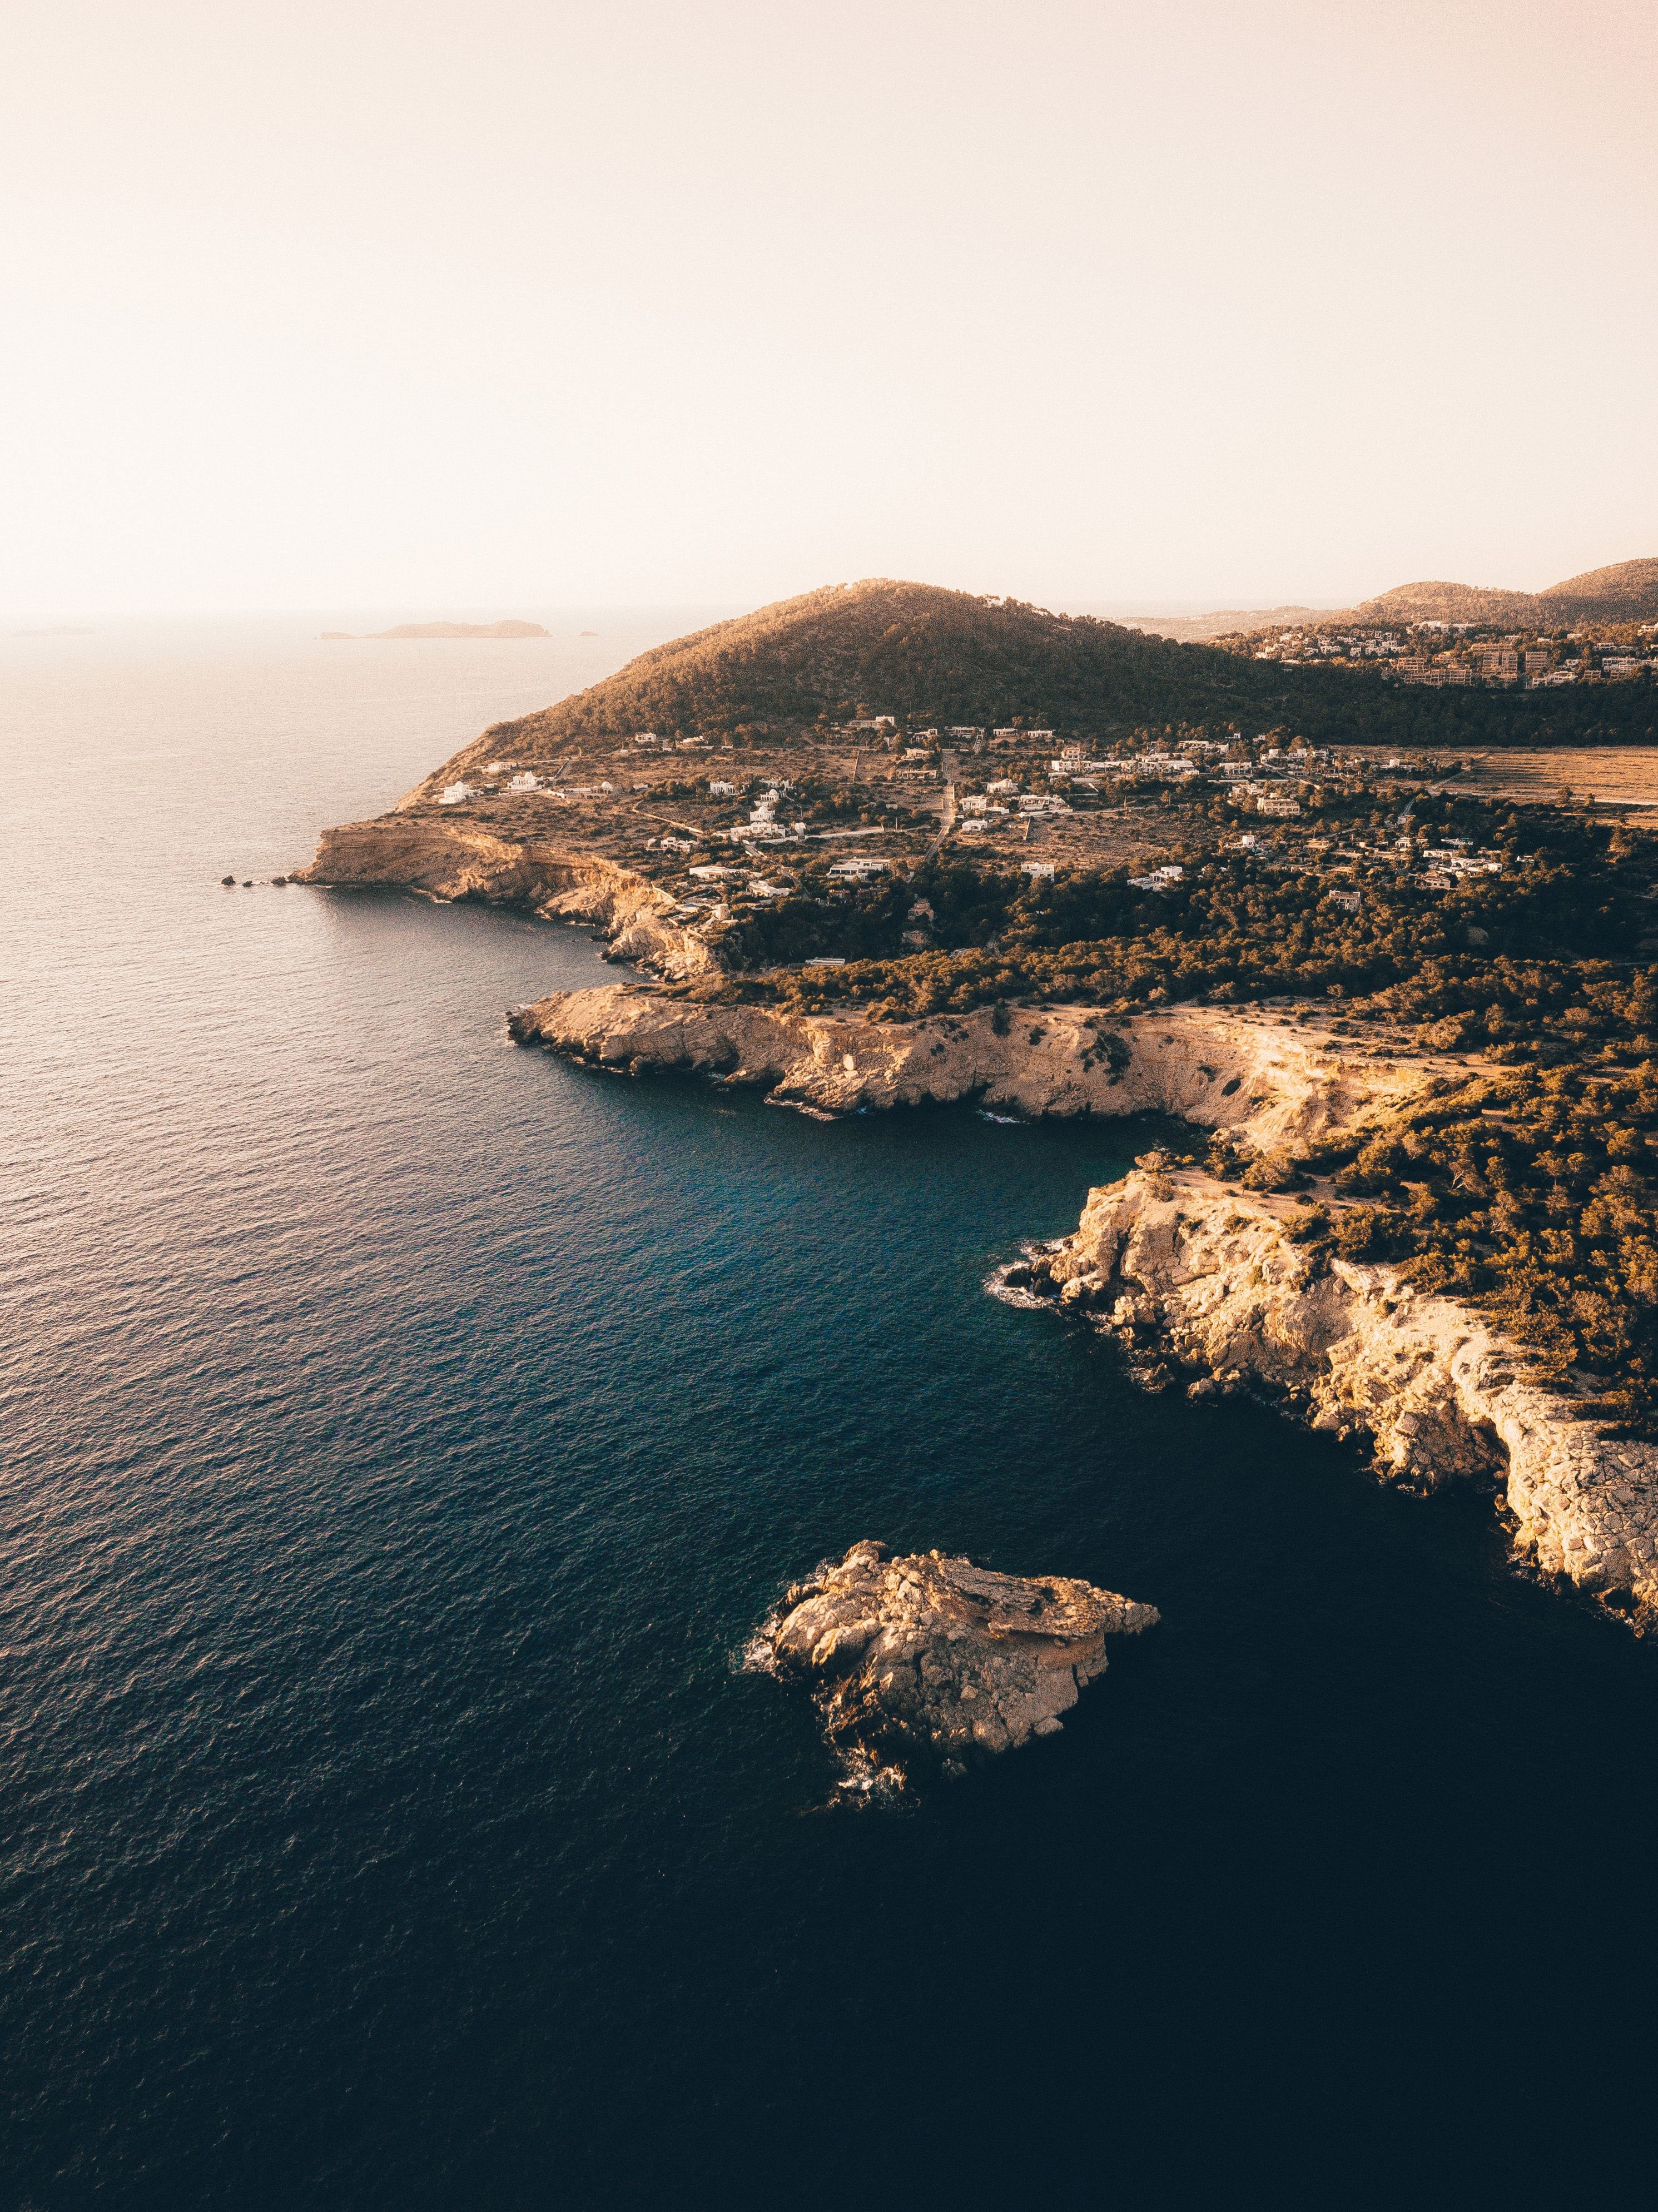 aerial photography of coastline near green trees